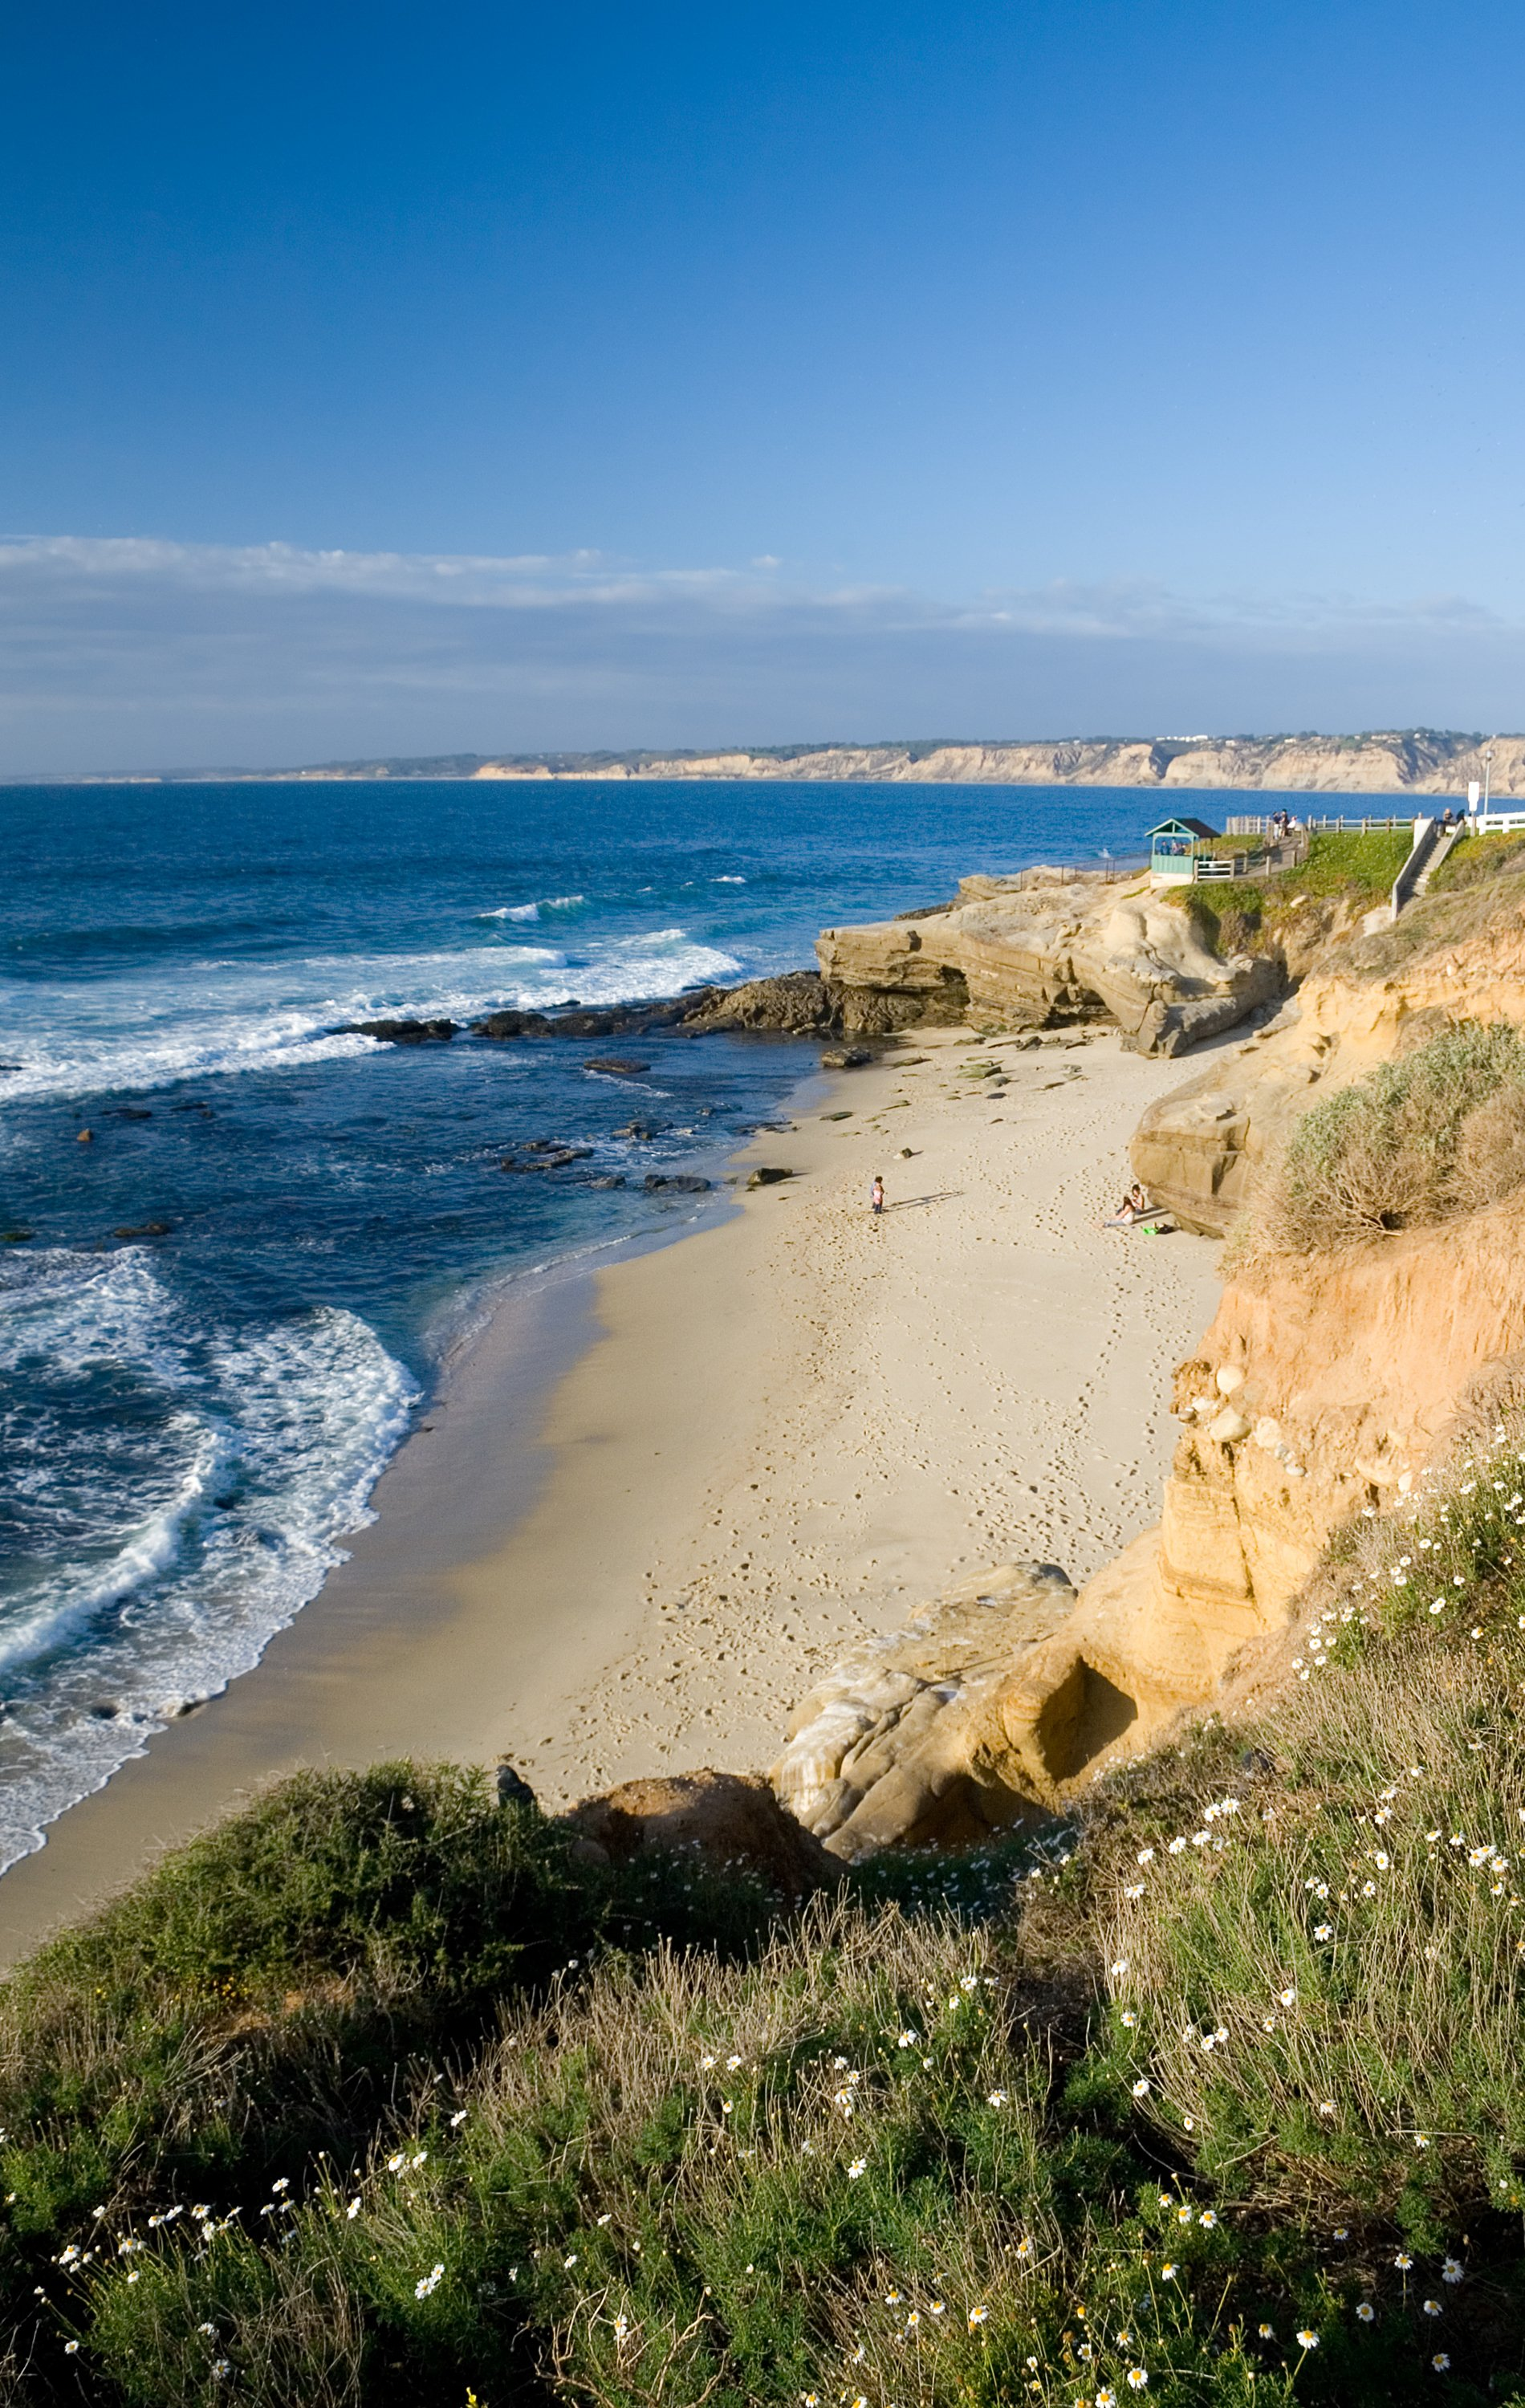 The sand at La Jolla Shell Beach on an uncrowded day.